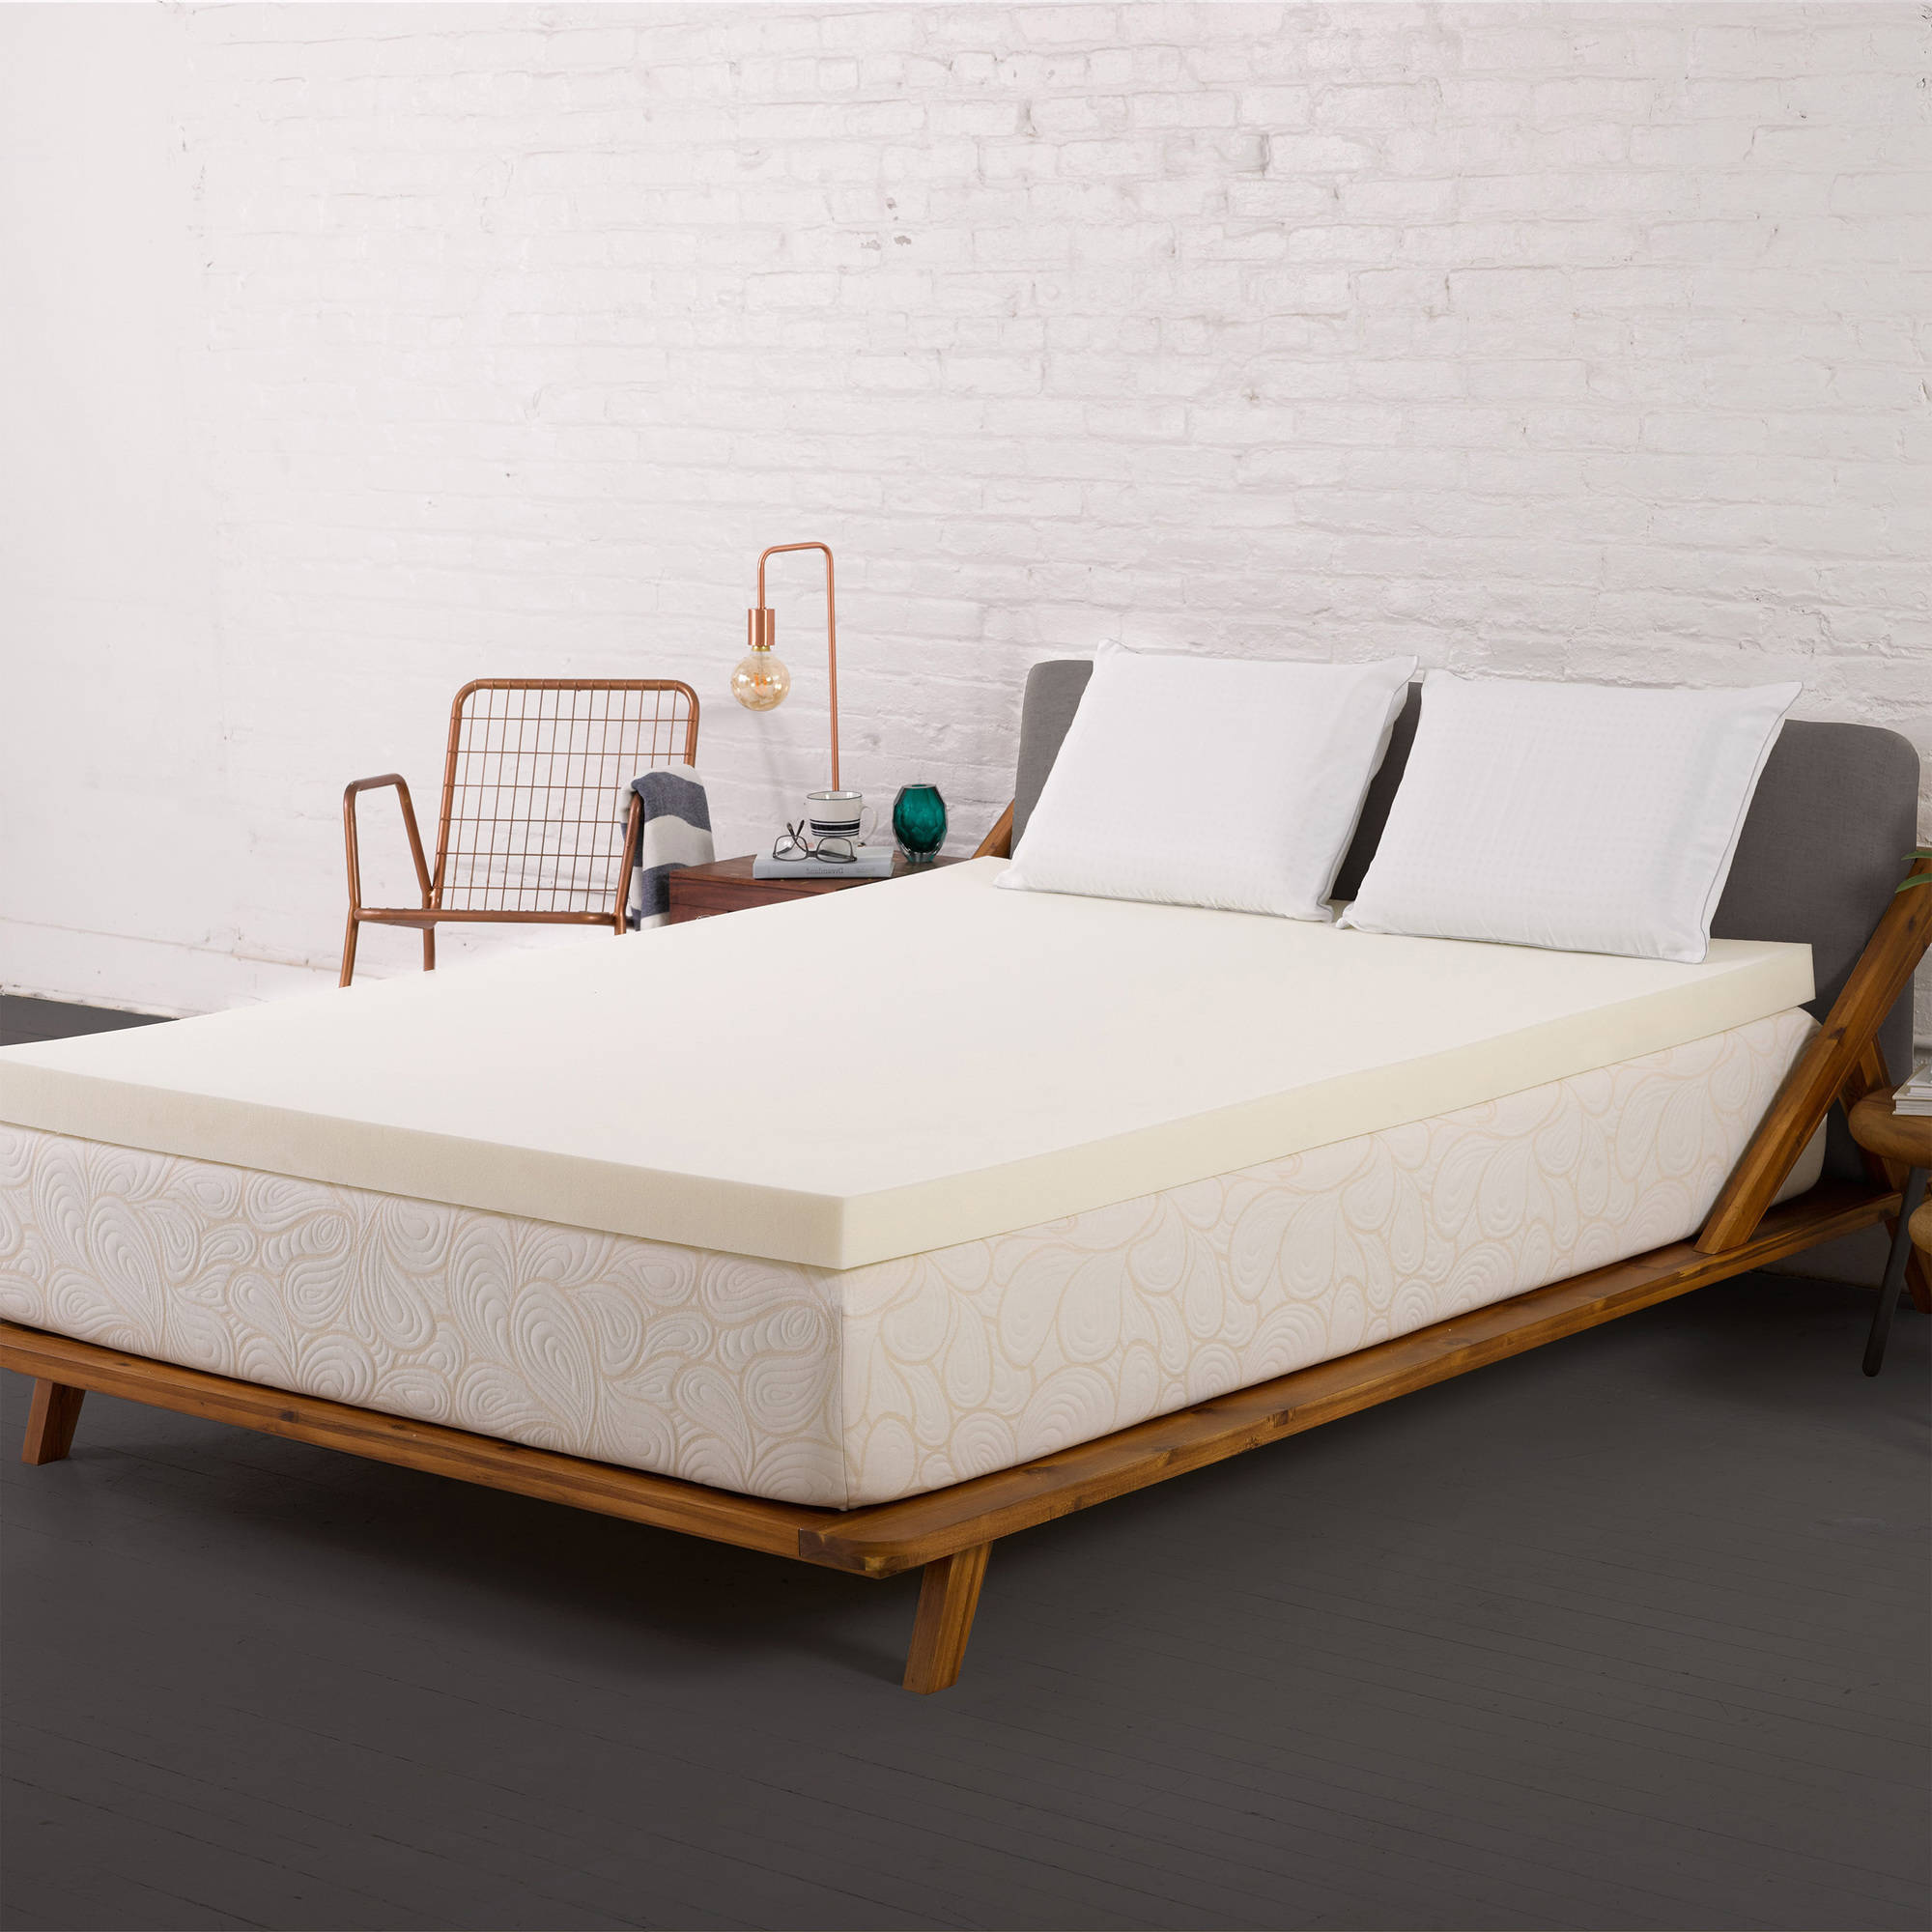 Authentic Comfort 4-Inch Memory Foam Mattress Topper